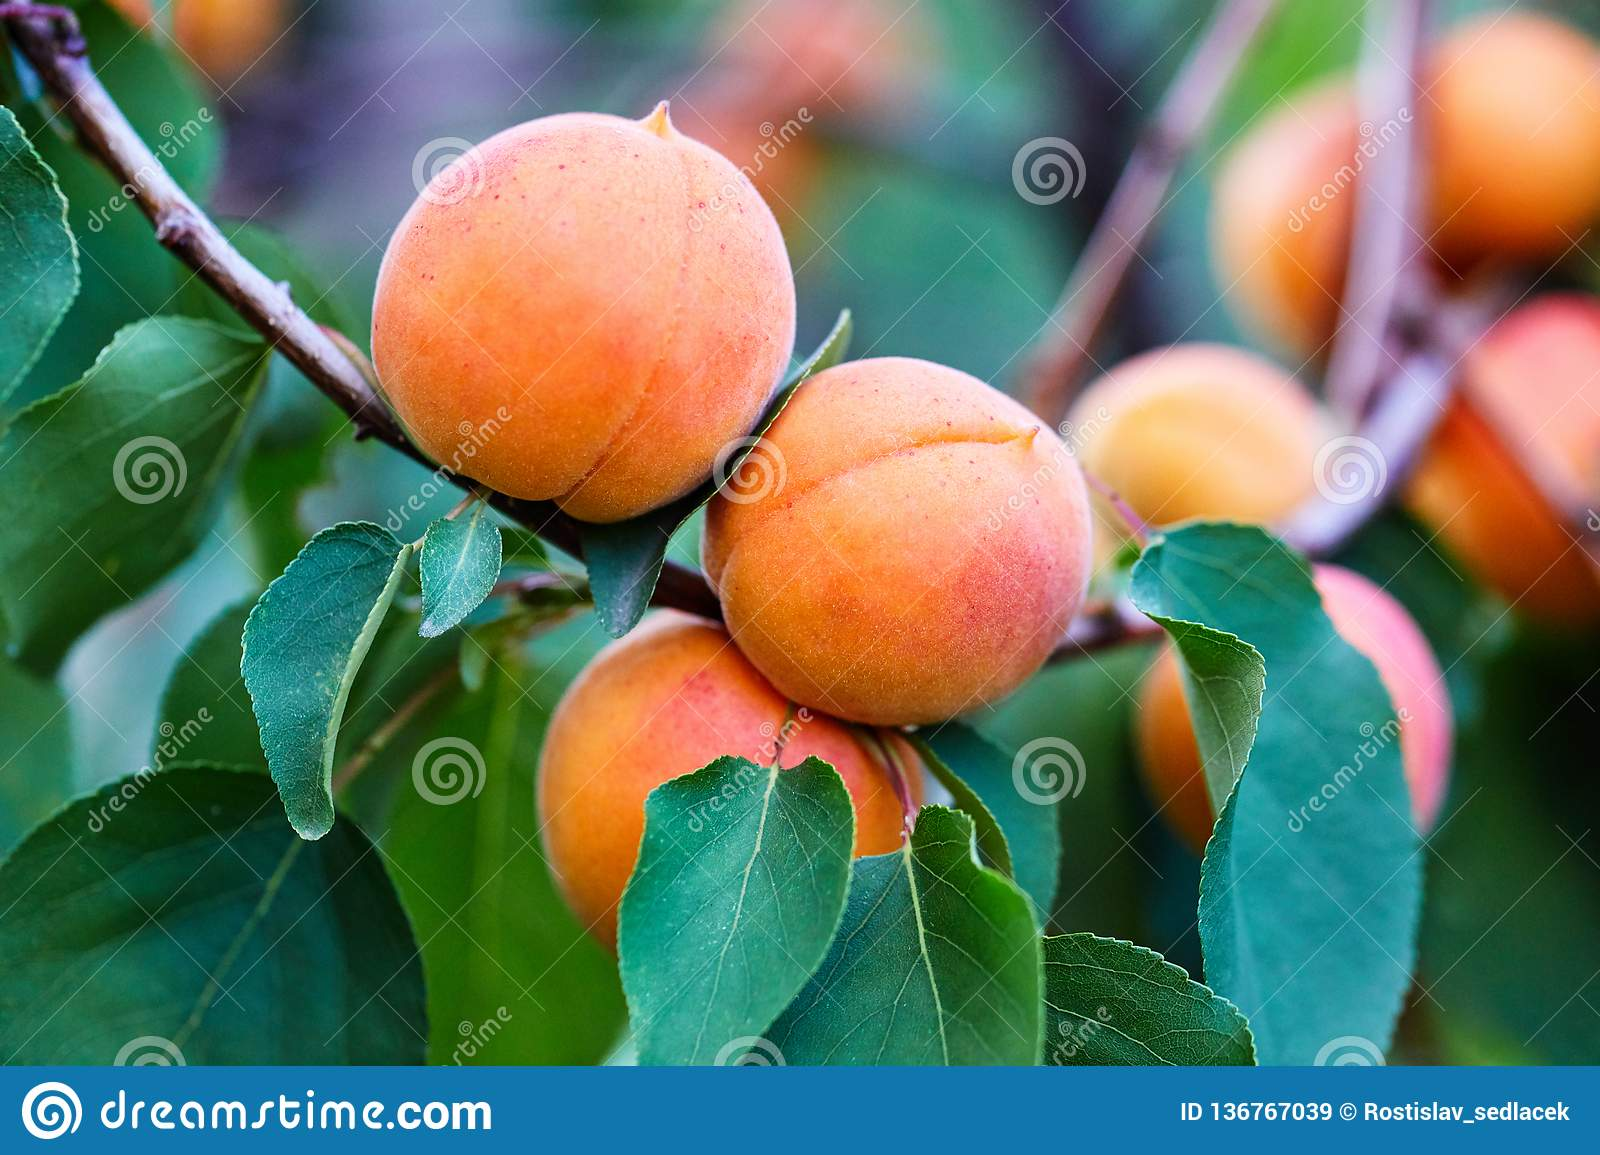 A bunch of ripe apricots branch